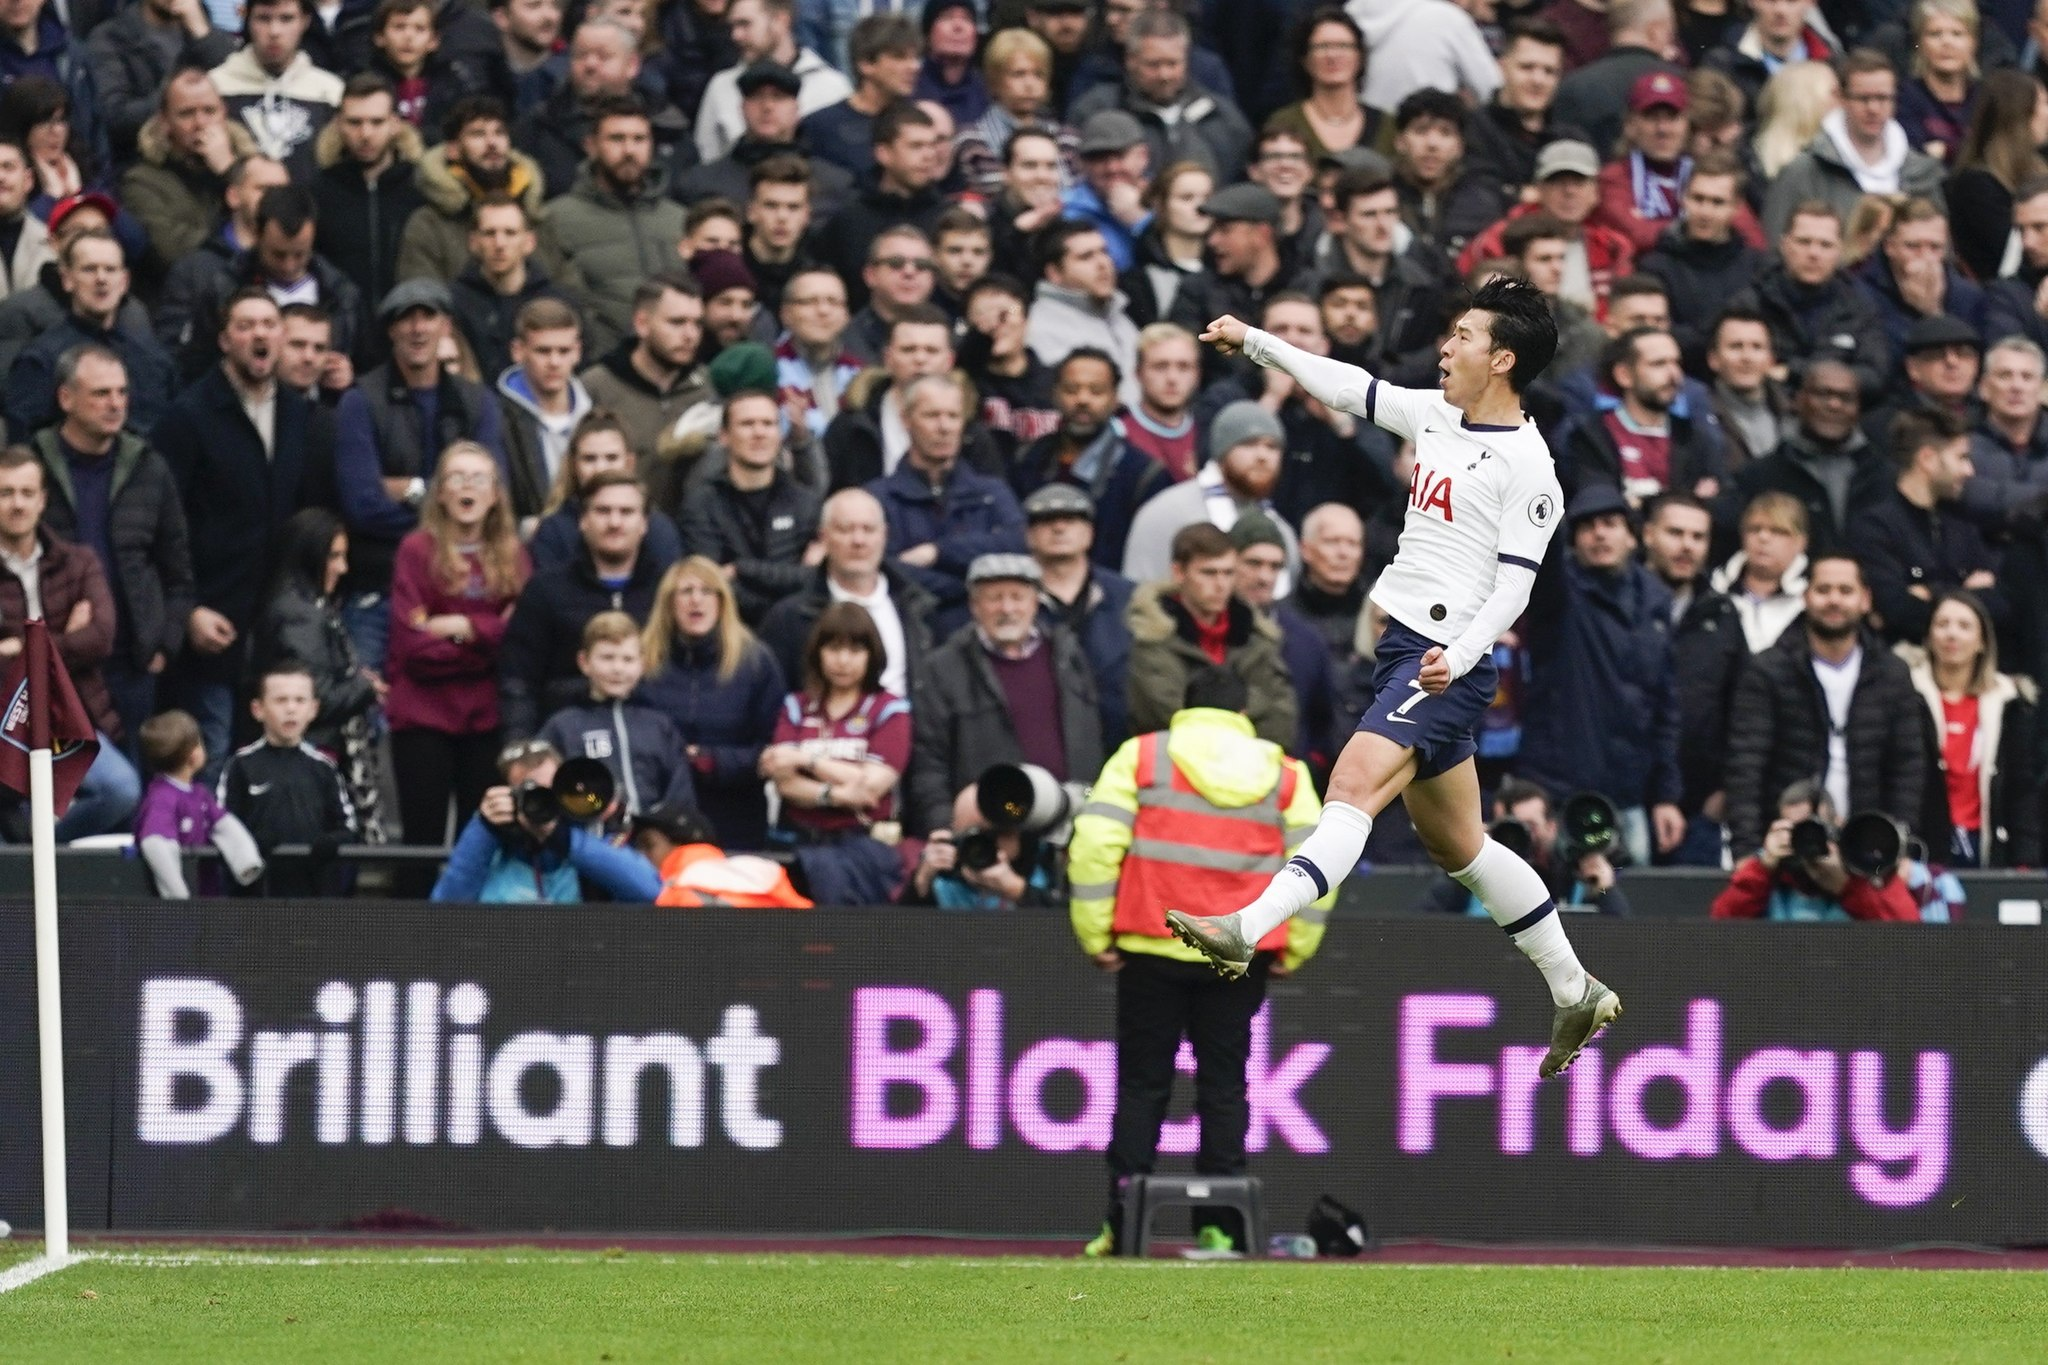 London (United Kingdom), 23/11/2019.- <HIT>Heung</HIT>-Min Son of Tottenham Hotspur celebrates after scoring during the English Premier League soccer match between West Ham United and Tottenham Hotspur in London, Britain, 23 November 2019. (Reino Unido, Londres) EFE/EPA/WILL OLIVER EDITORIAL USE ONLY. No use with unauthorized audio, video, data, fixture lists, club/league logos or live services. Online in-match use limited to 120 images, no video emulation. No use in betting, games or single club/league/player publications